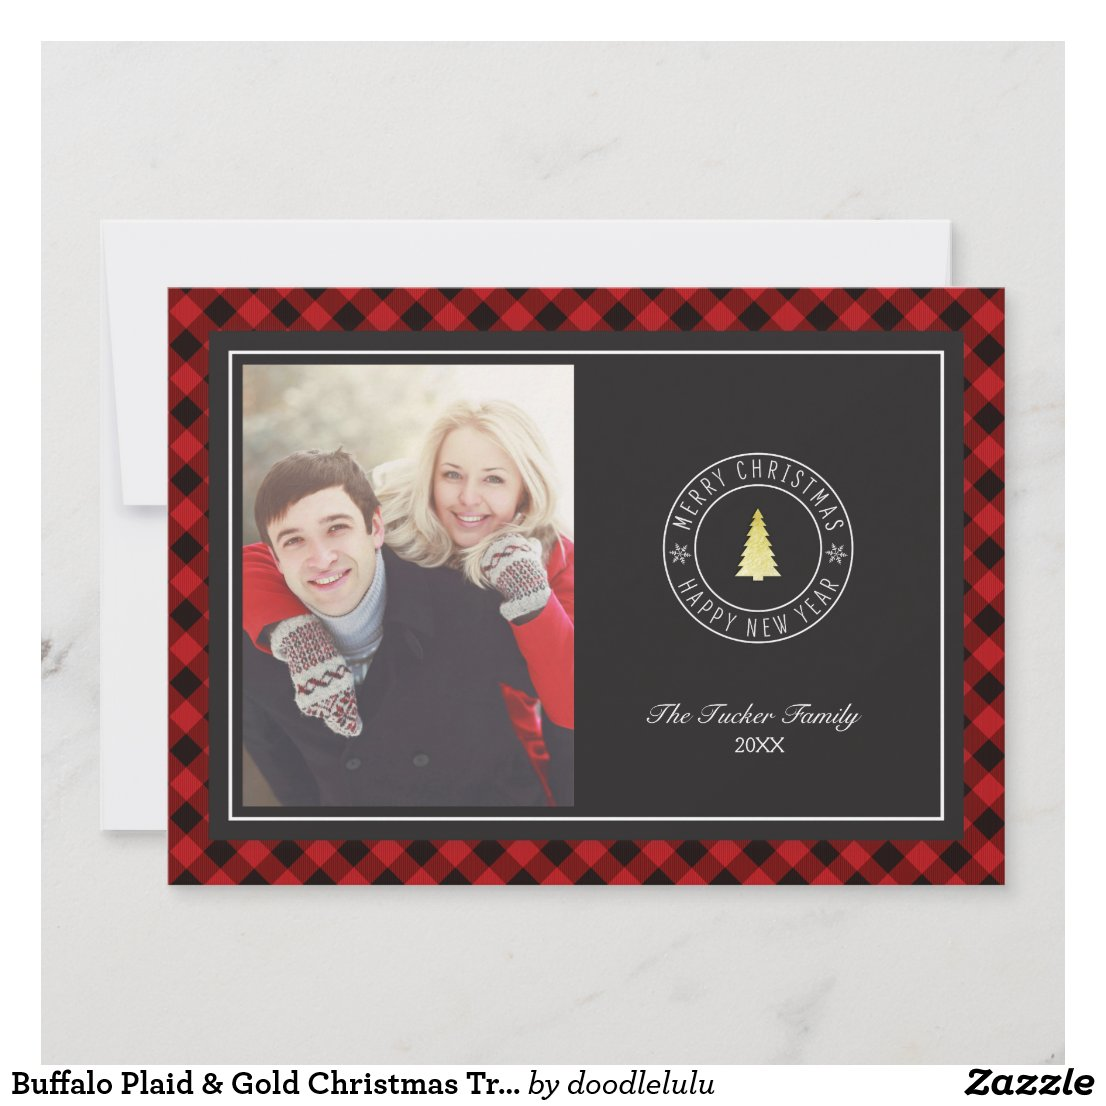 Buffalo Plaid & Gold Christmas Tree Photo Card